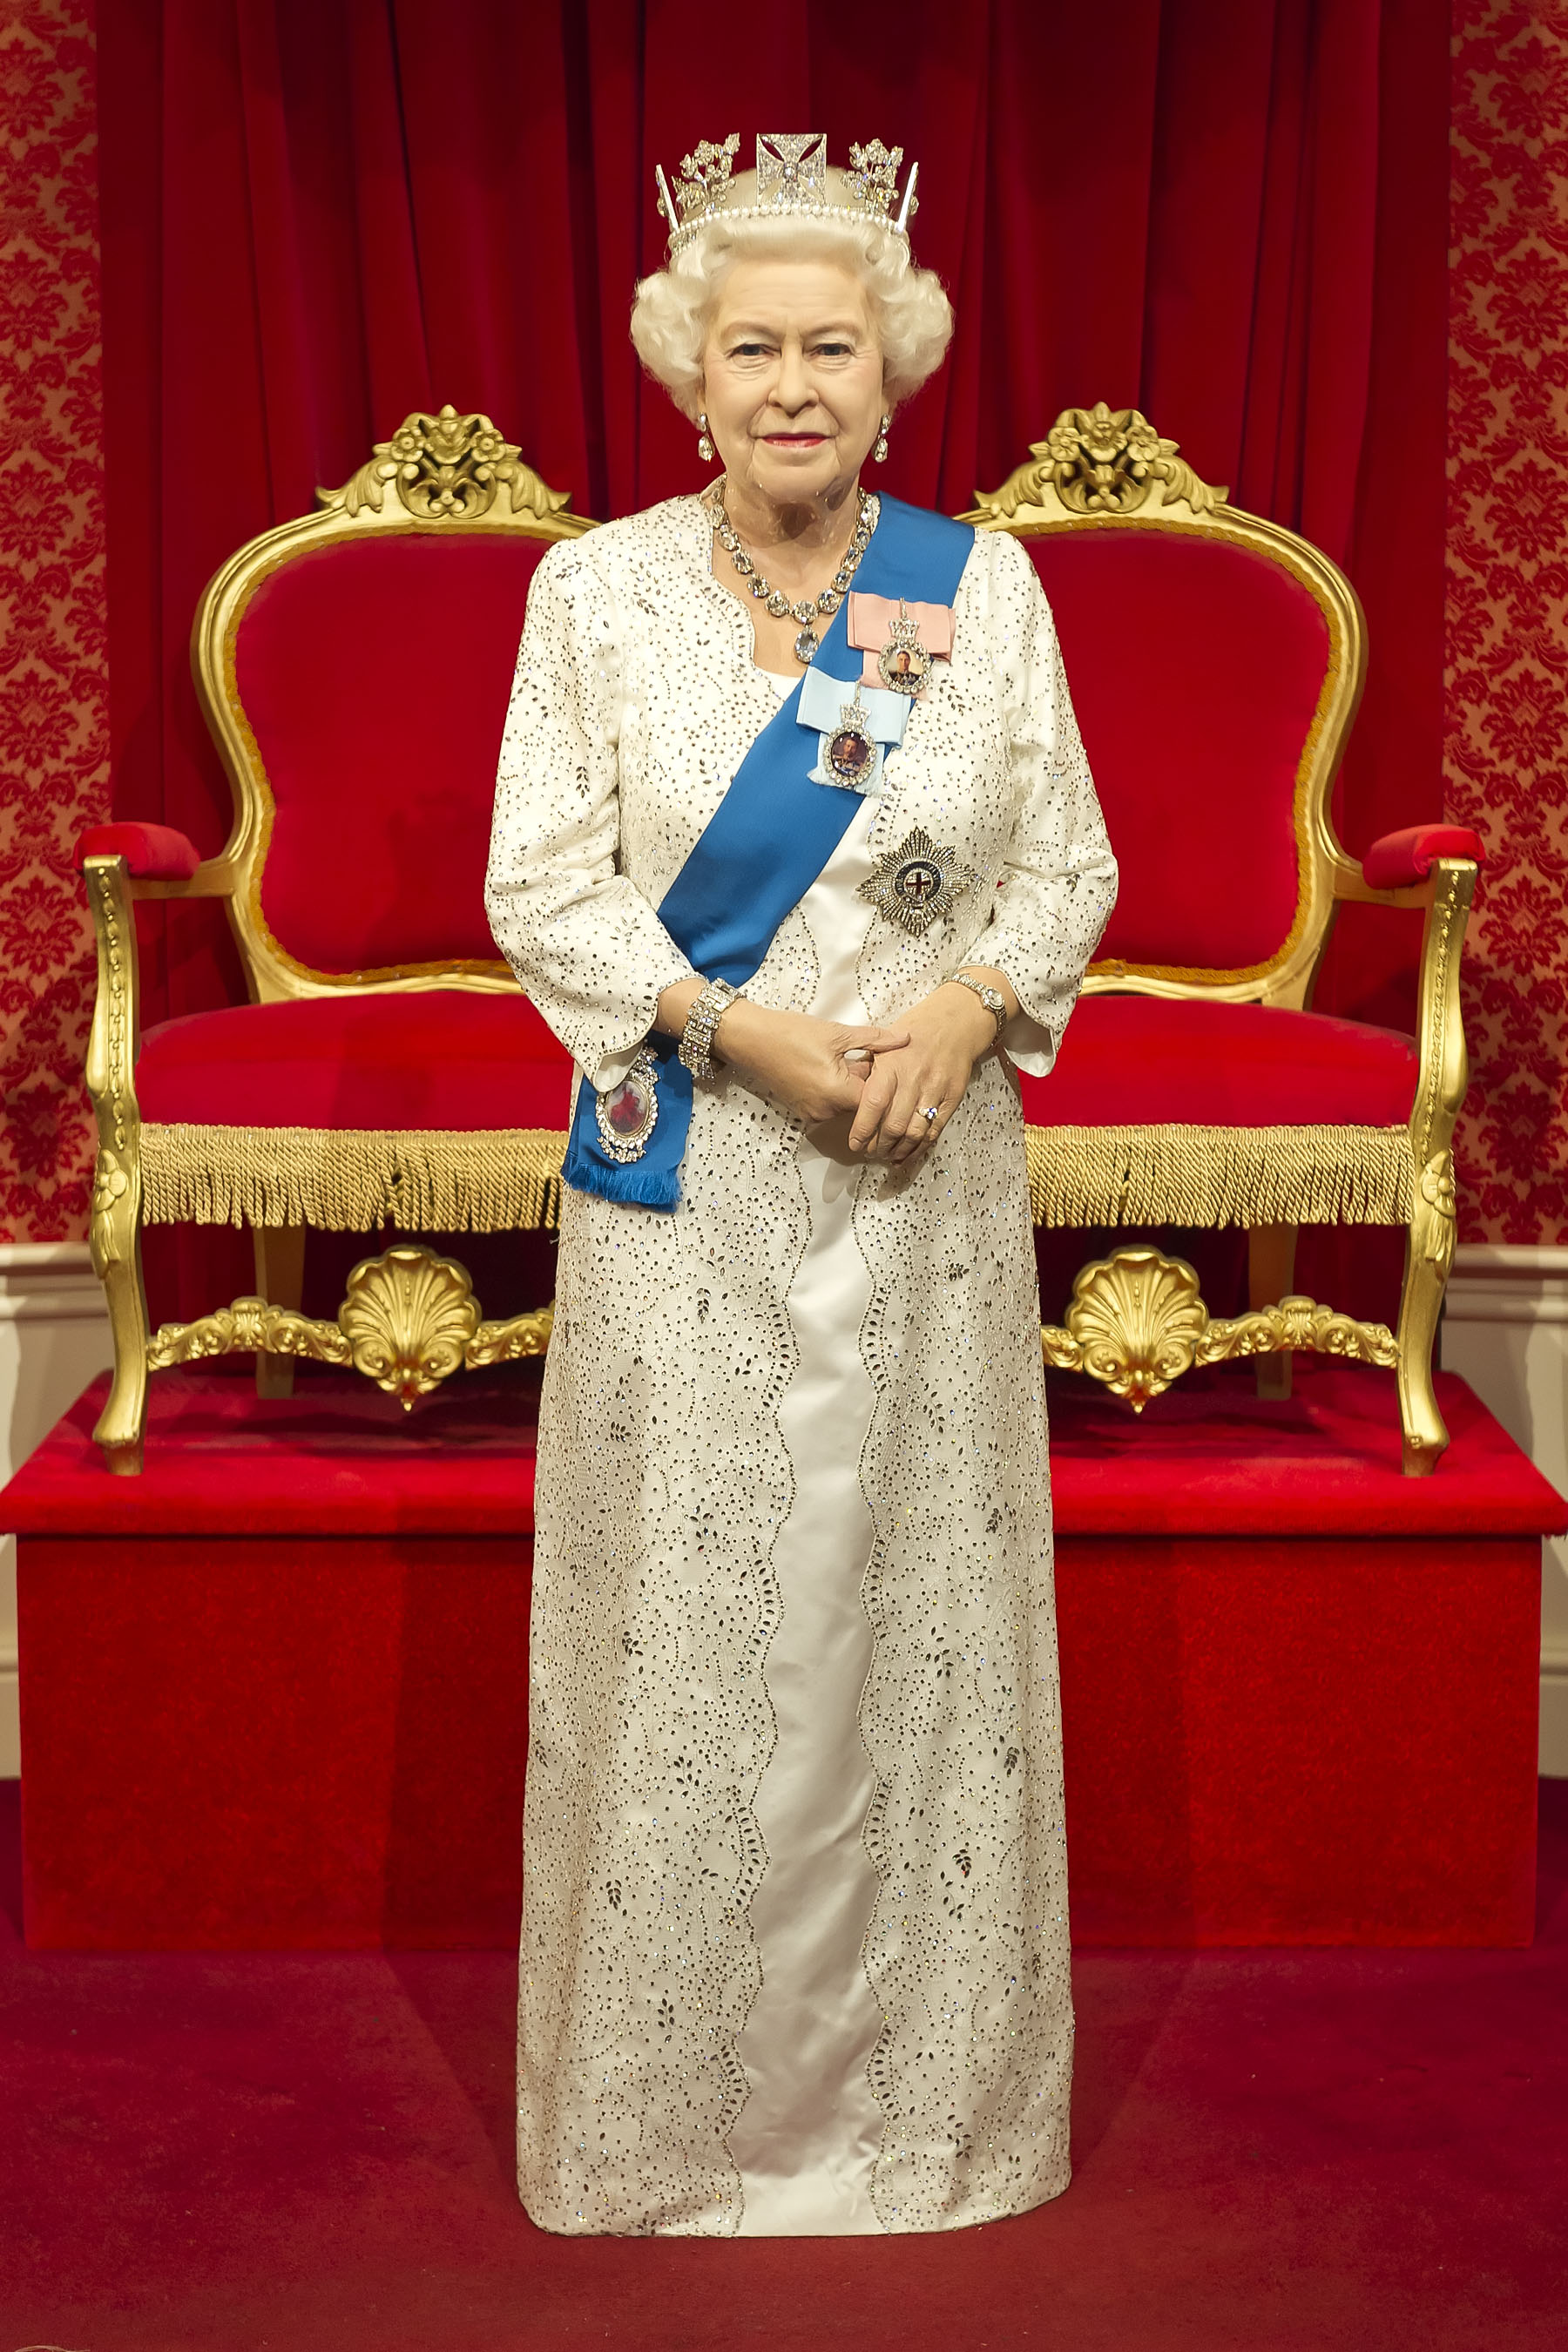 Queen Elizabeth II figure at Madame Tussauds